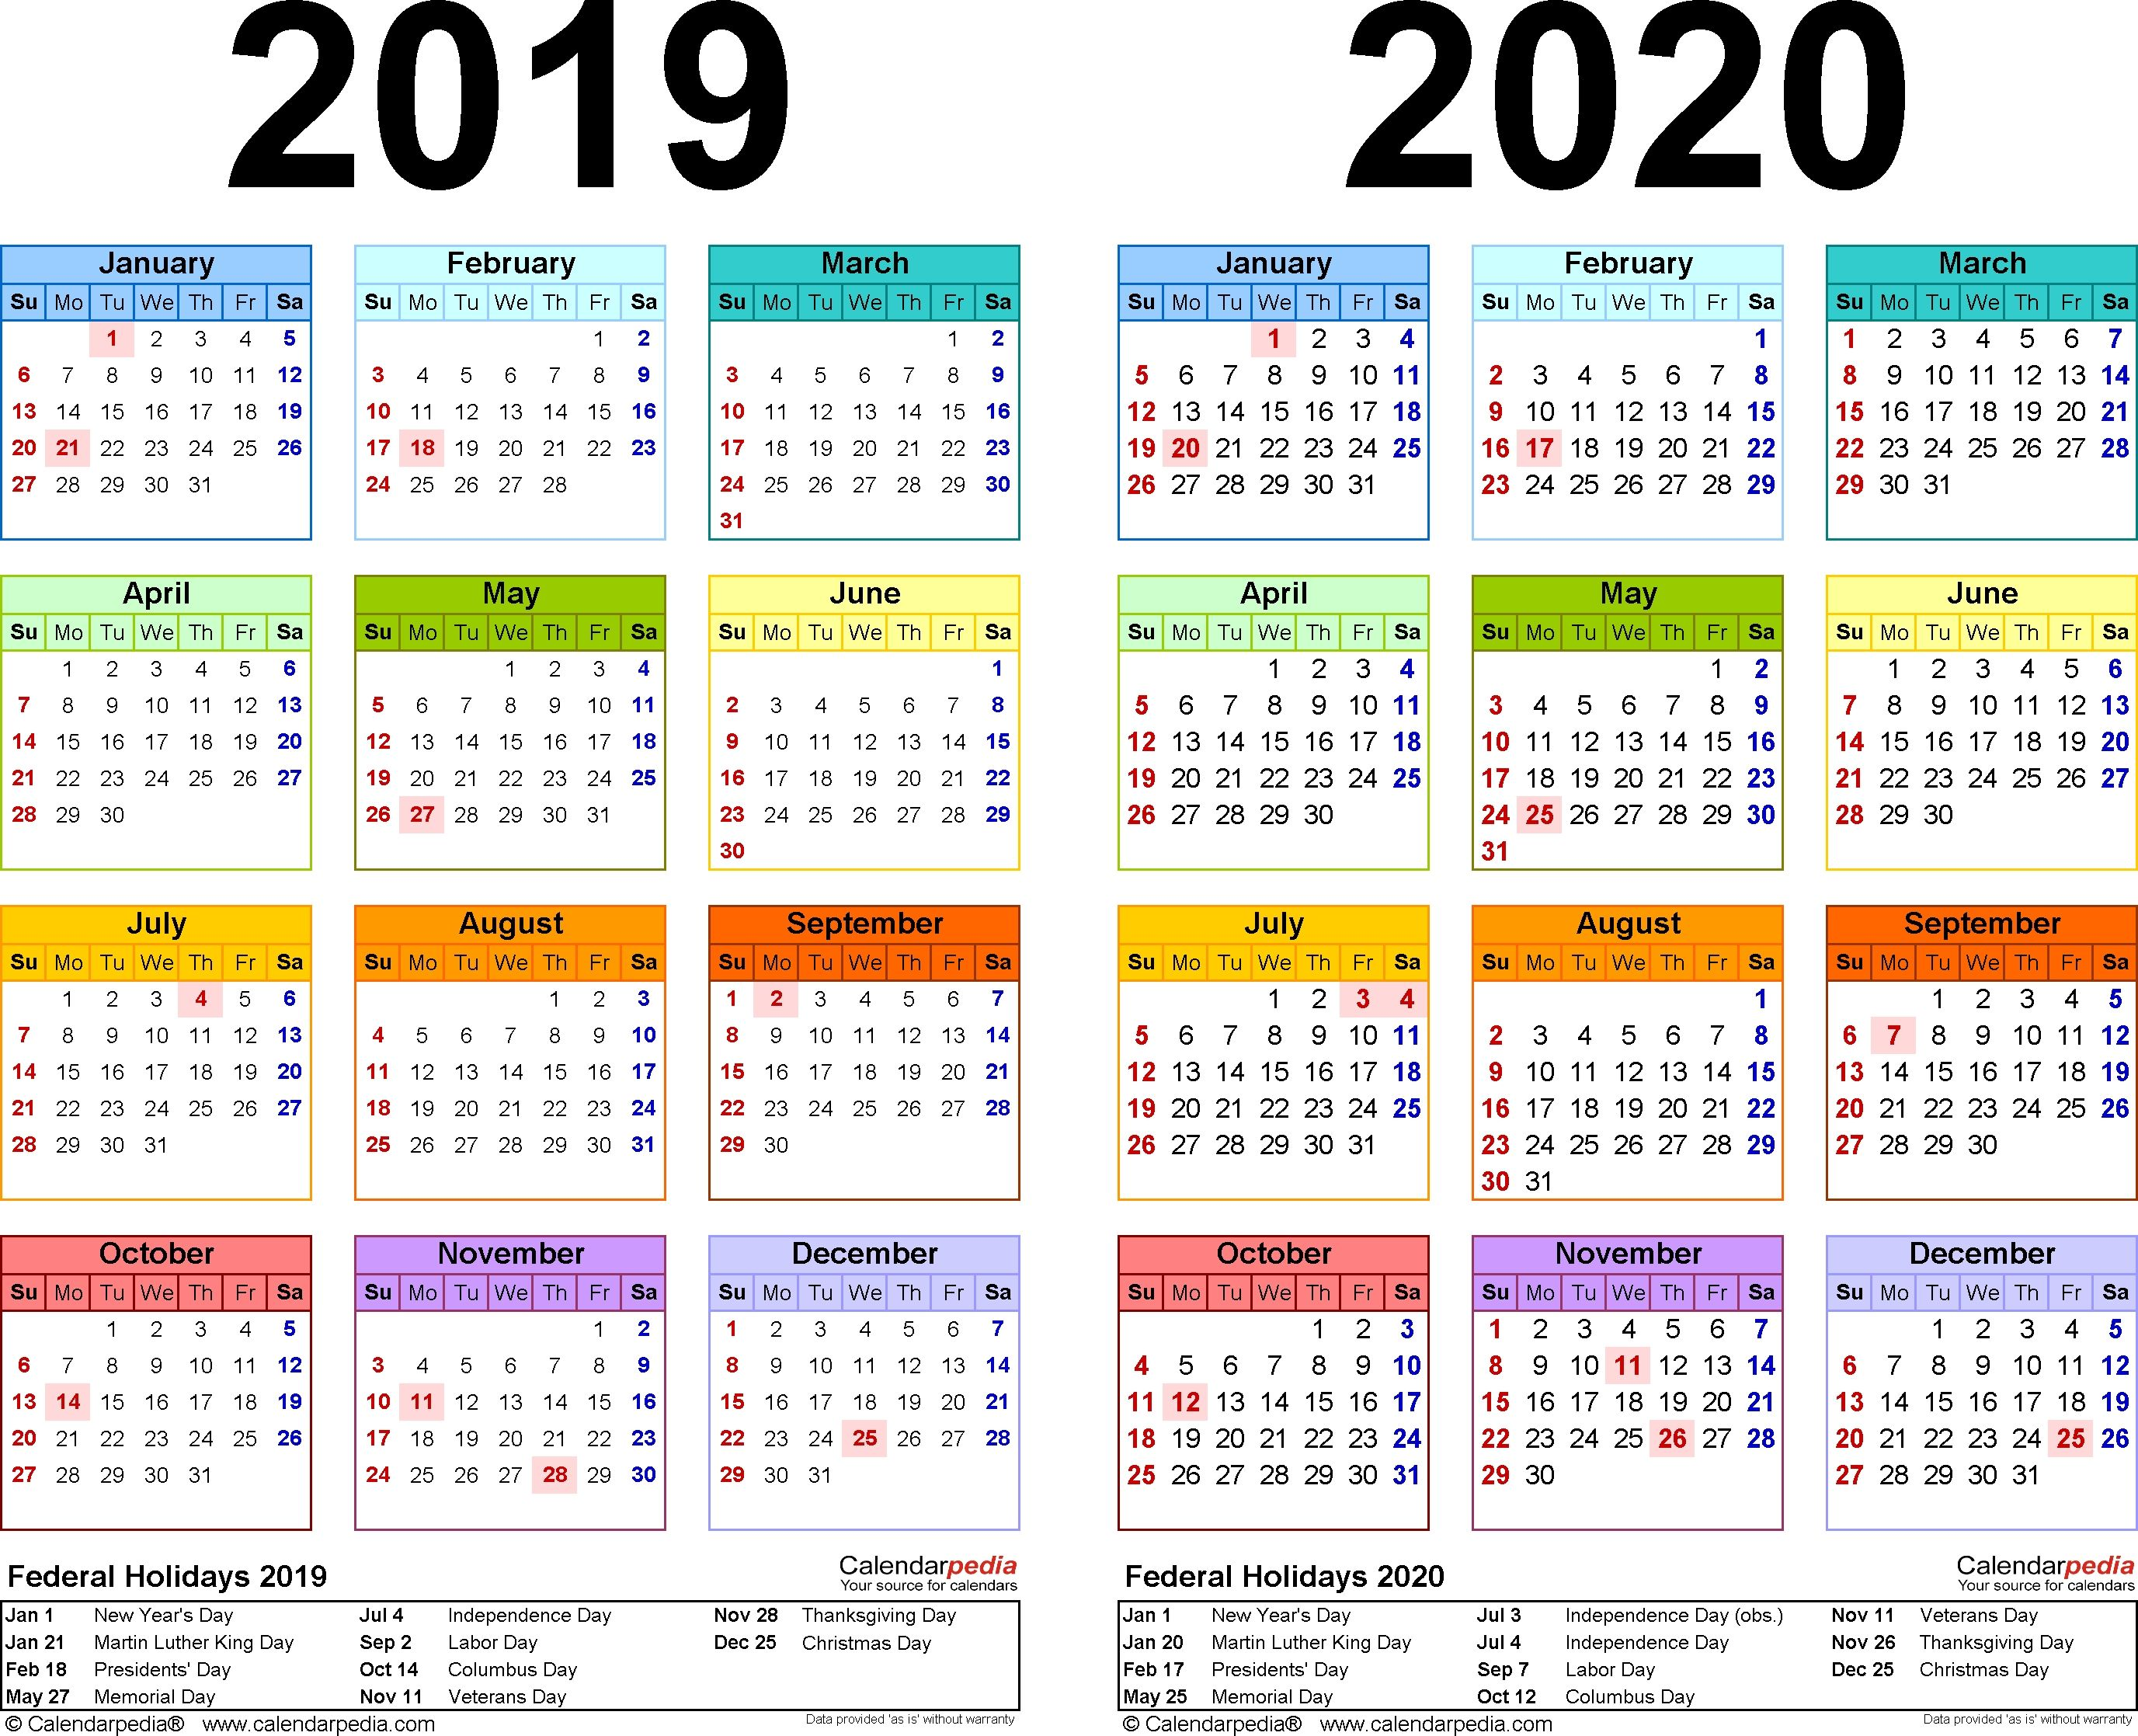 2019 2020 Calendar Free Printable Two Year Pdf Calendars Dowload Printable Calendar Design Calendar Printables School Calendar